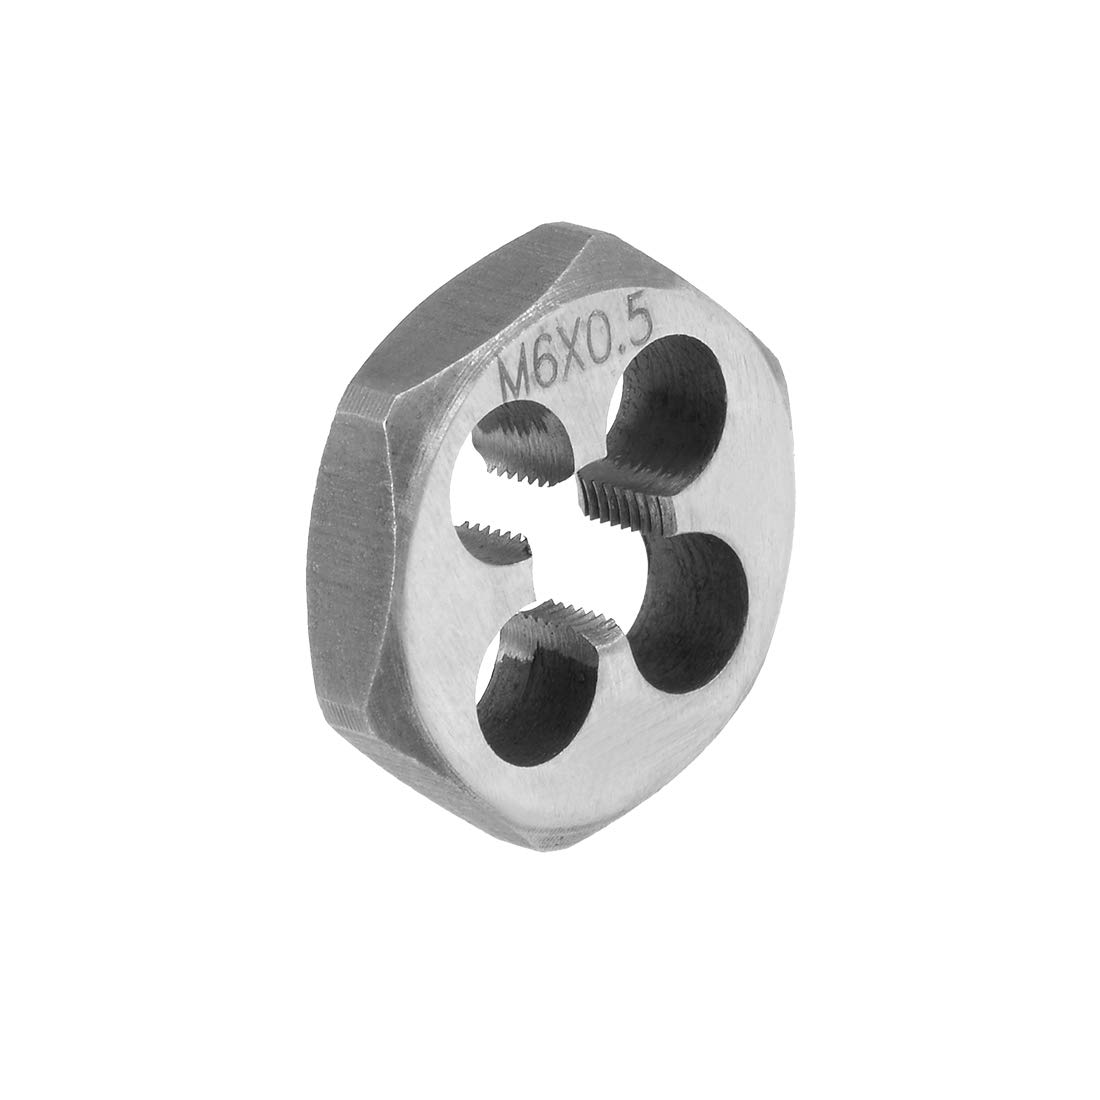 M6 X 0.75 CARBON STEEL HEXAGONAL RE-THREADING DIE